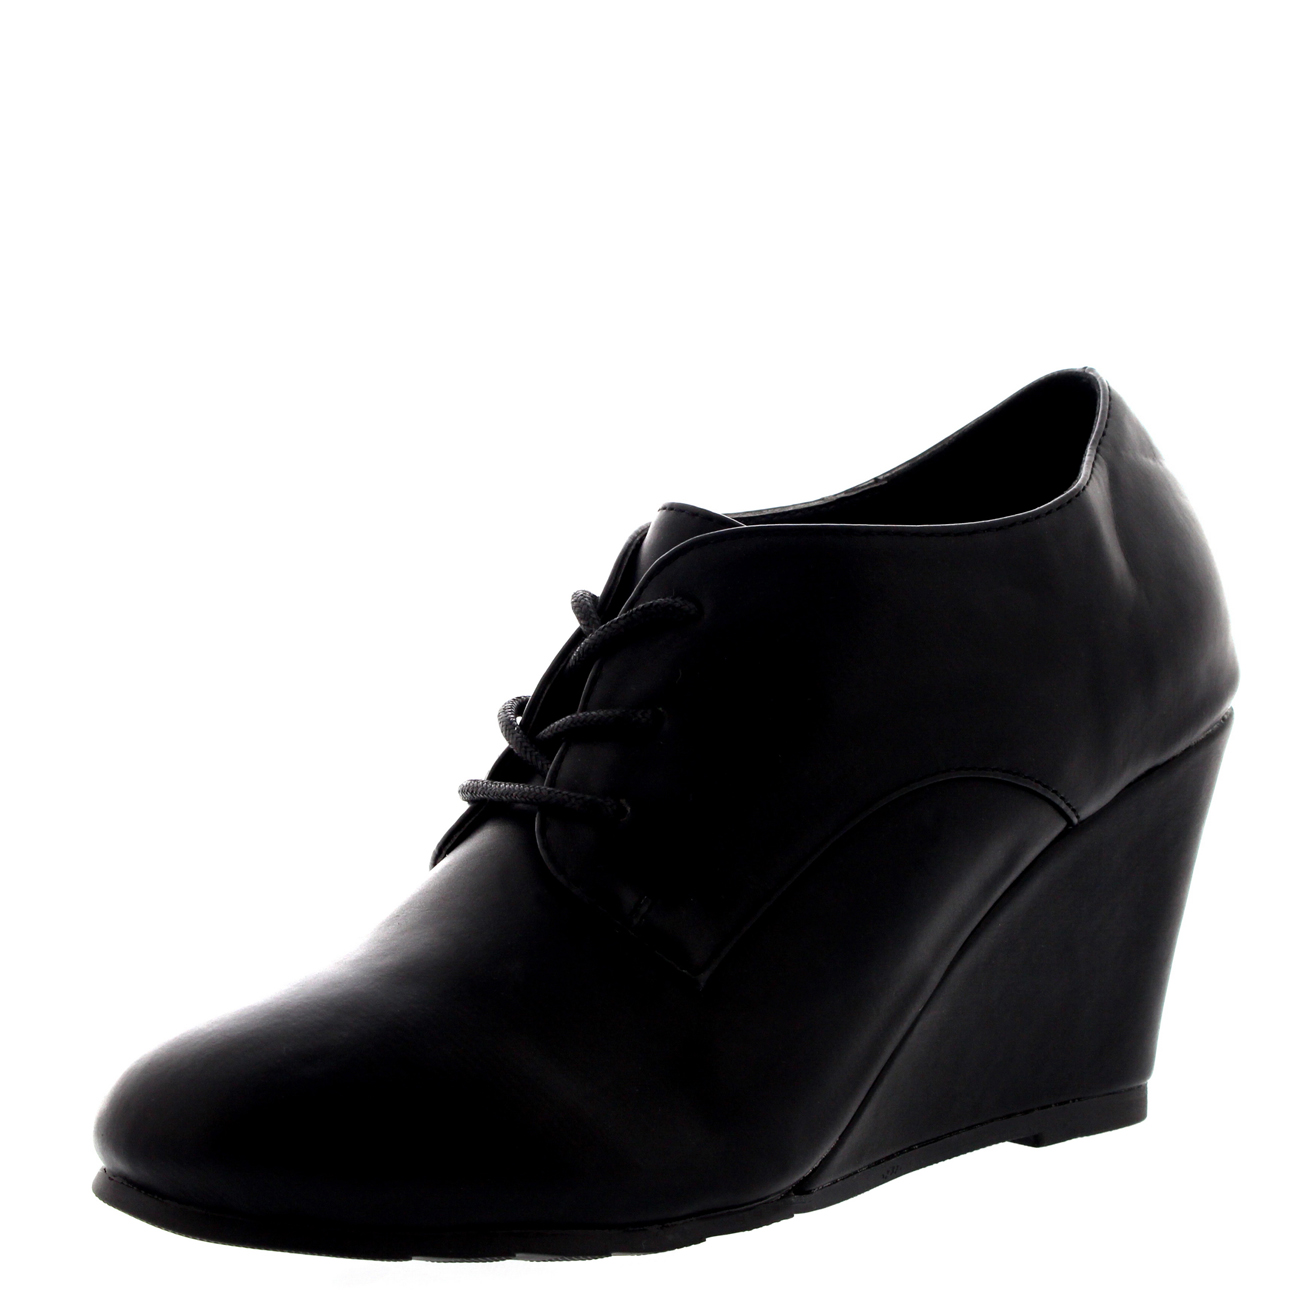 09607082a08c Womens Mid Block Heel Lace Up Evening Work Mary Jane Ankle Boot Shoes Viva